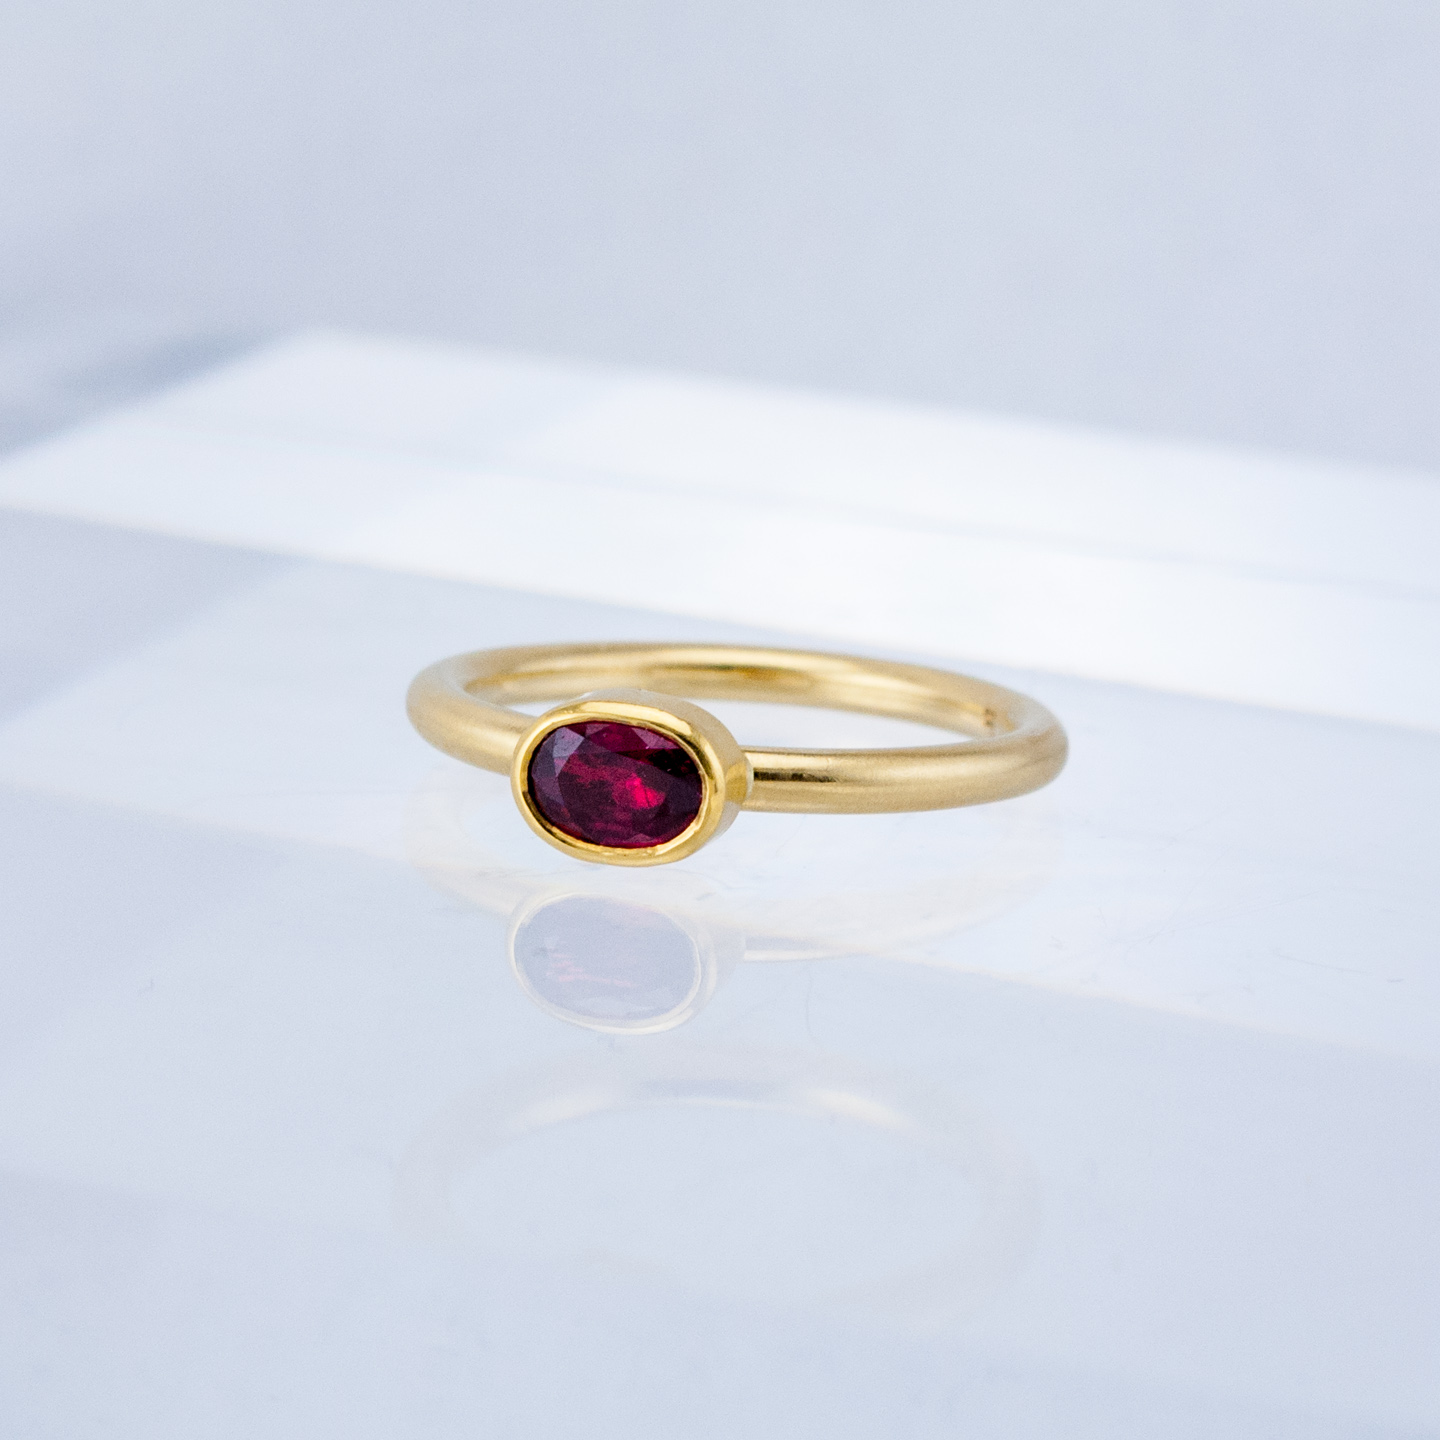 Moonbeam Stacking Ring with Ruby